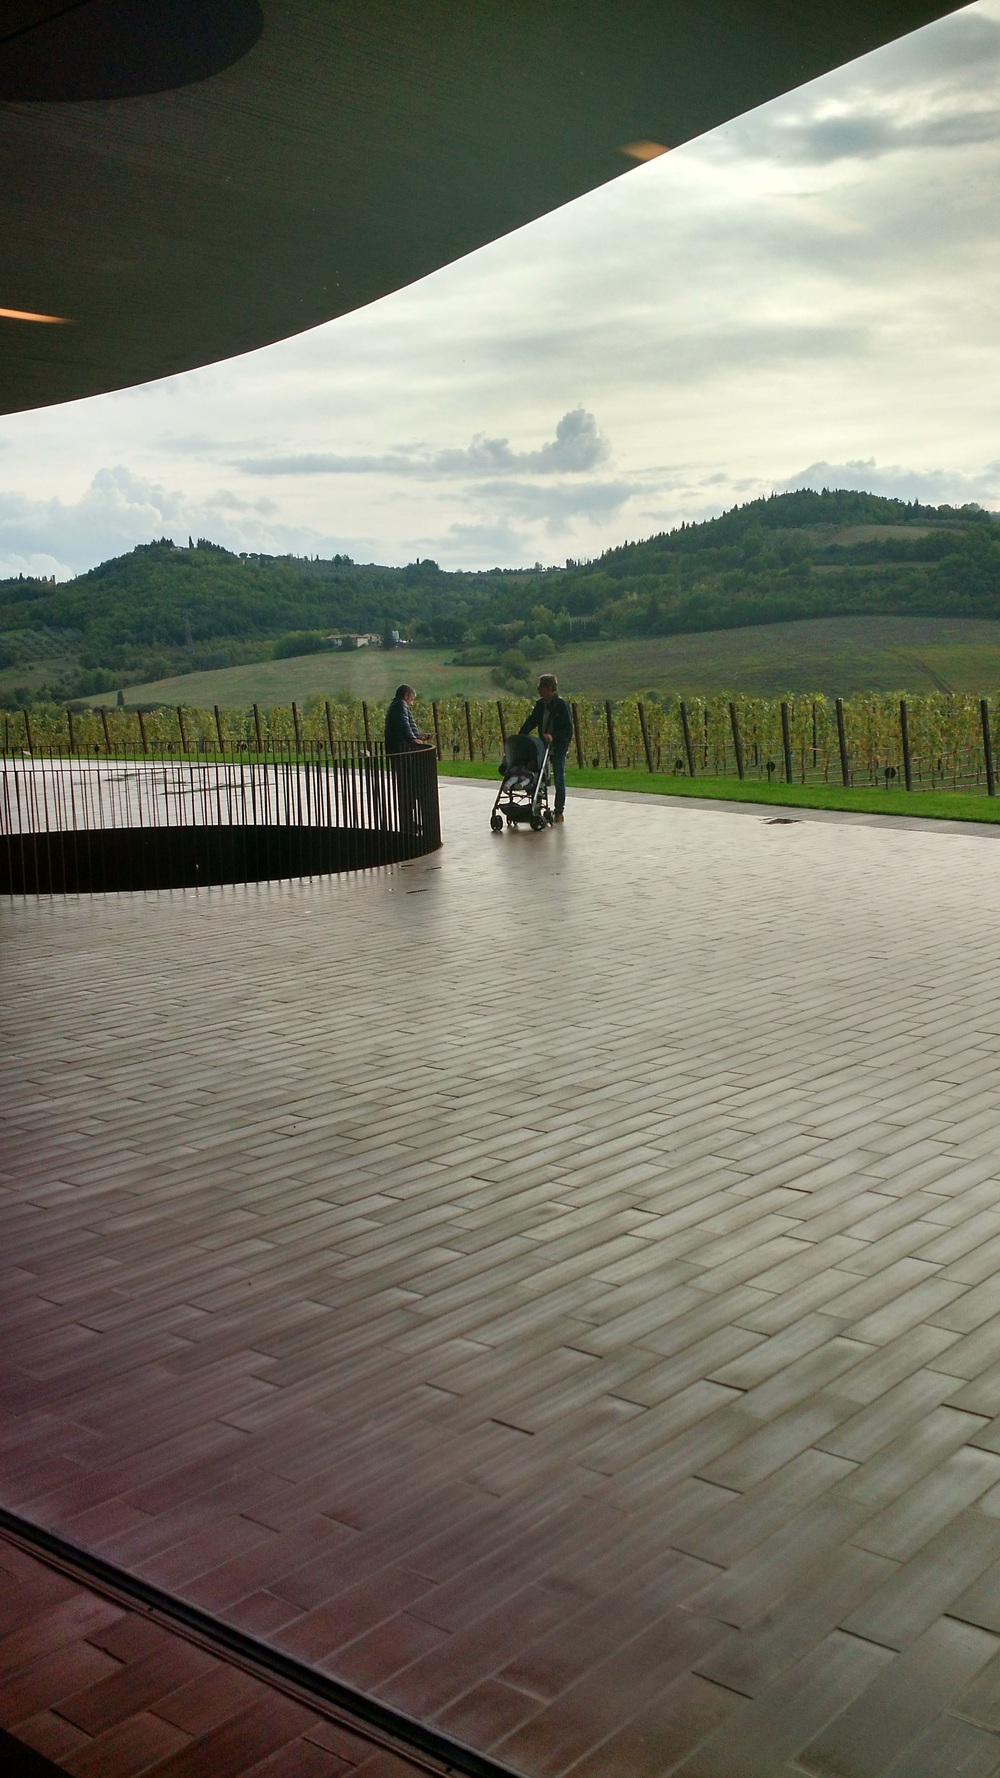 The new Antinori Winery